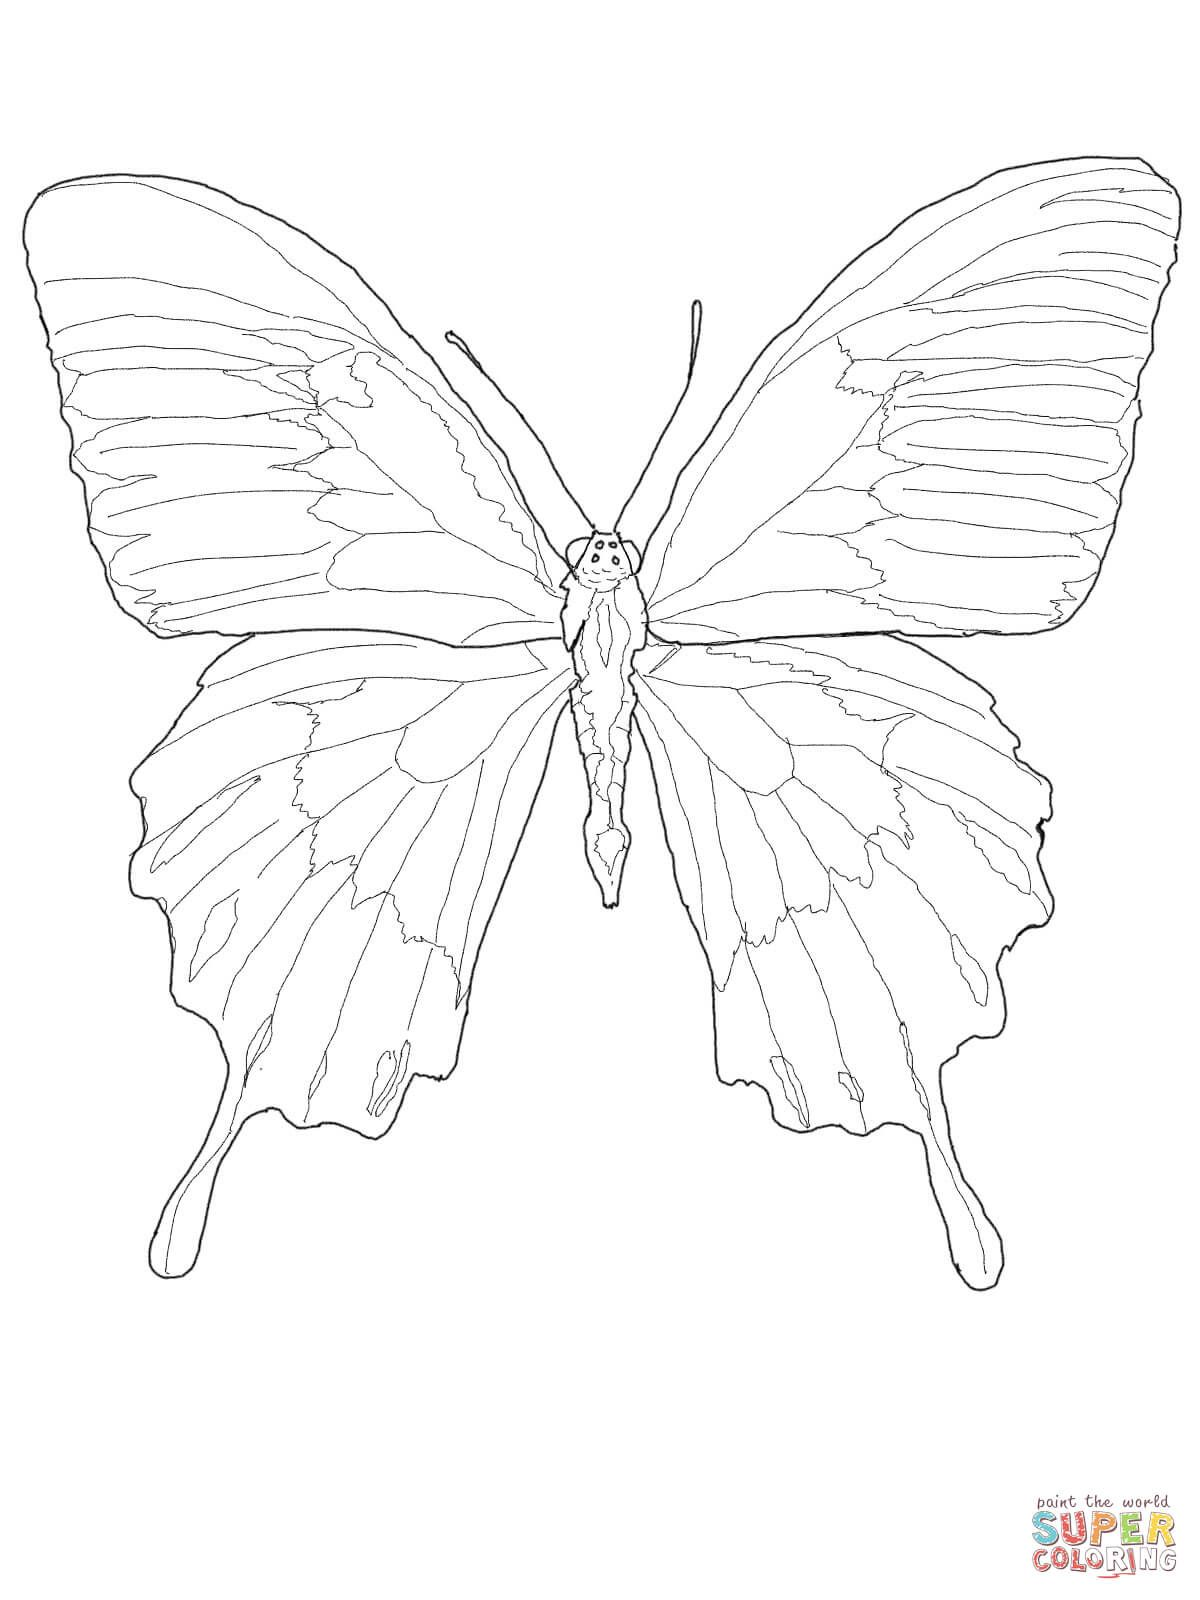 Ulysses Butterfly Super Coloring Butterfly Coloring Page Butterfly Drawing Butterfly Sketch [ 1600 x 1200 Pixel ]